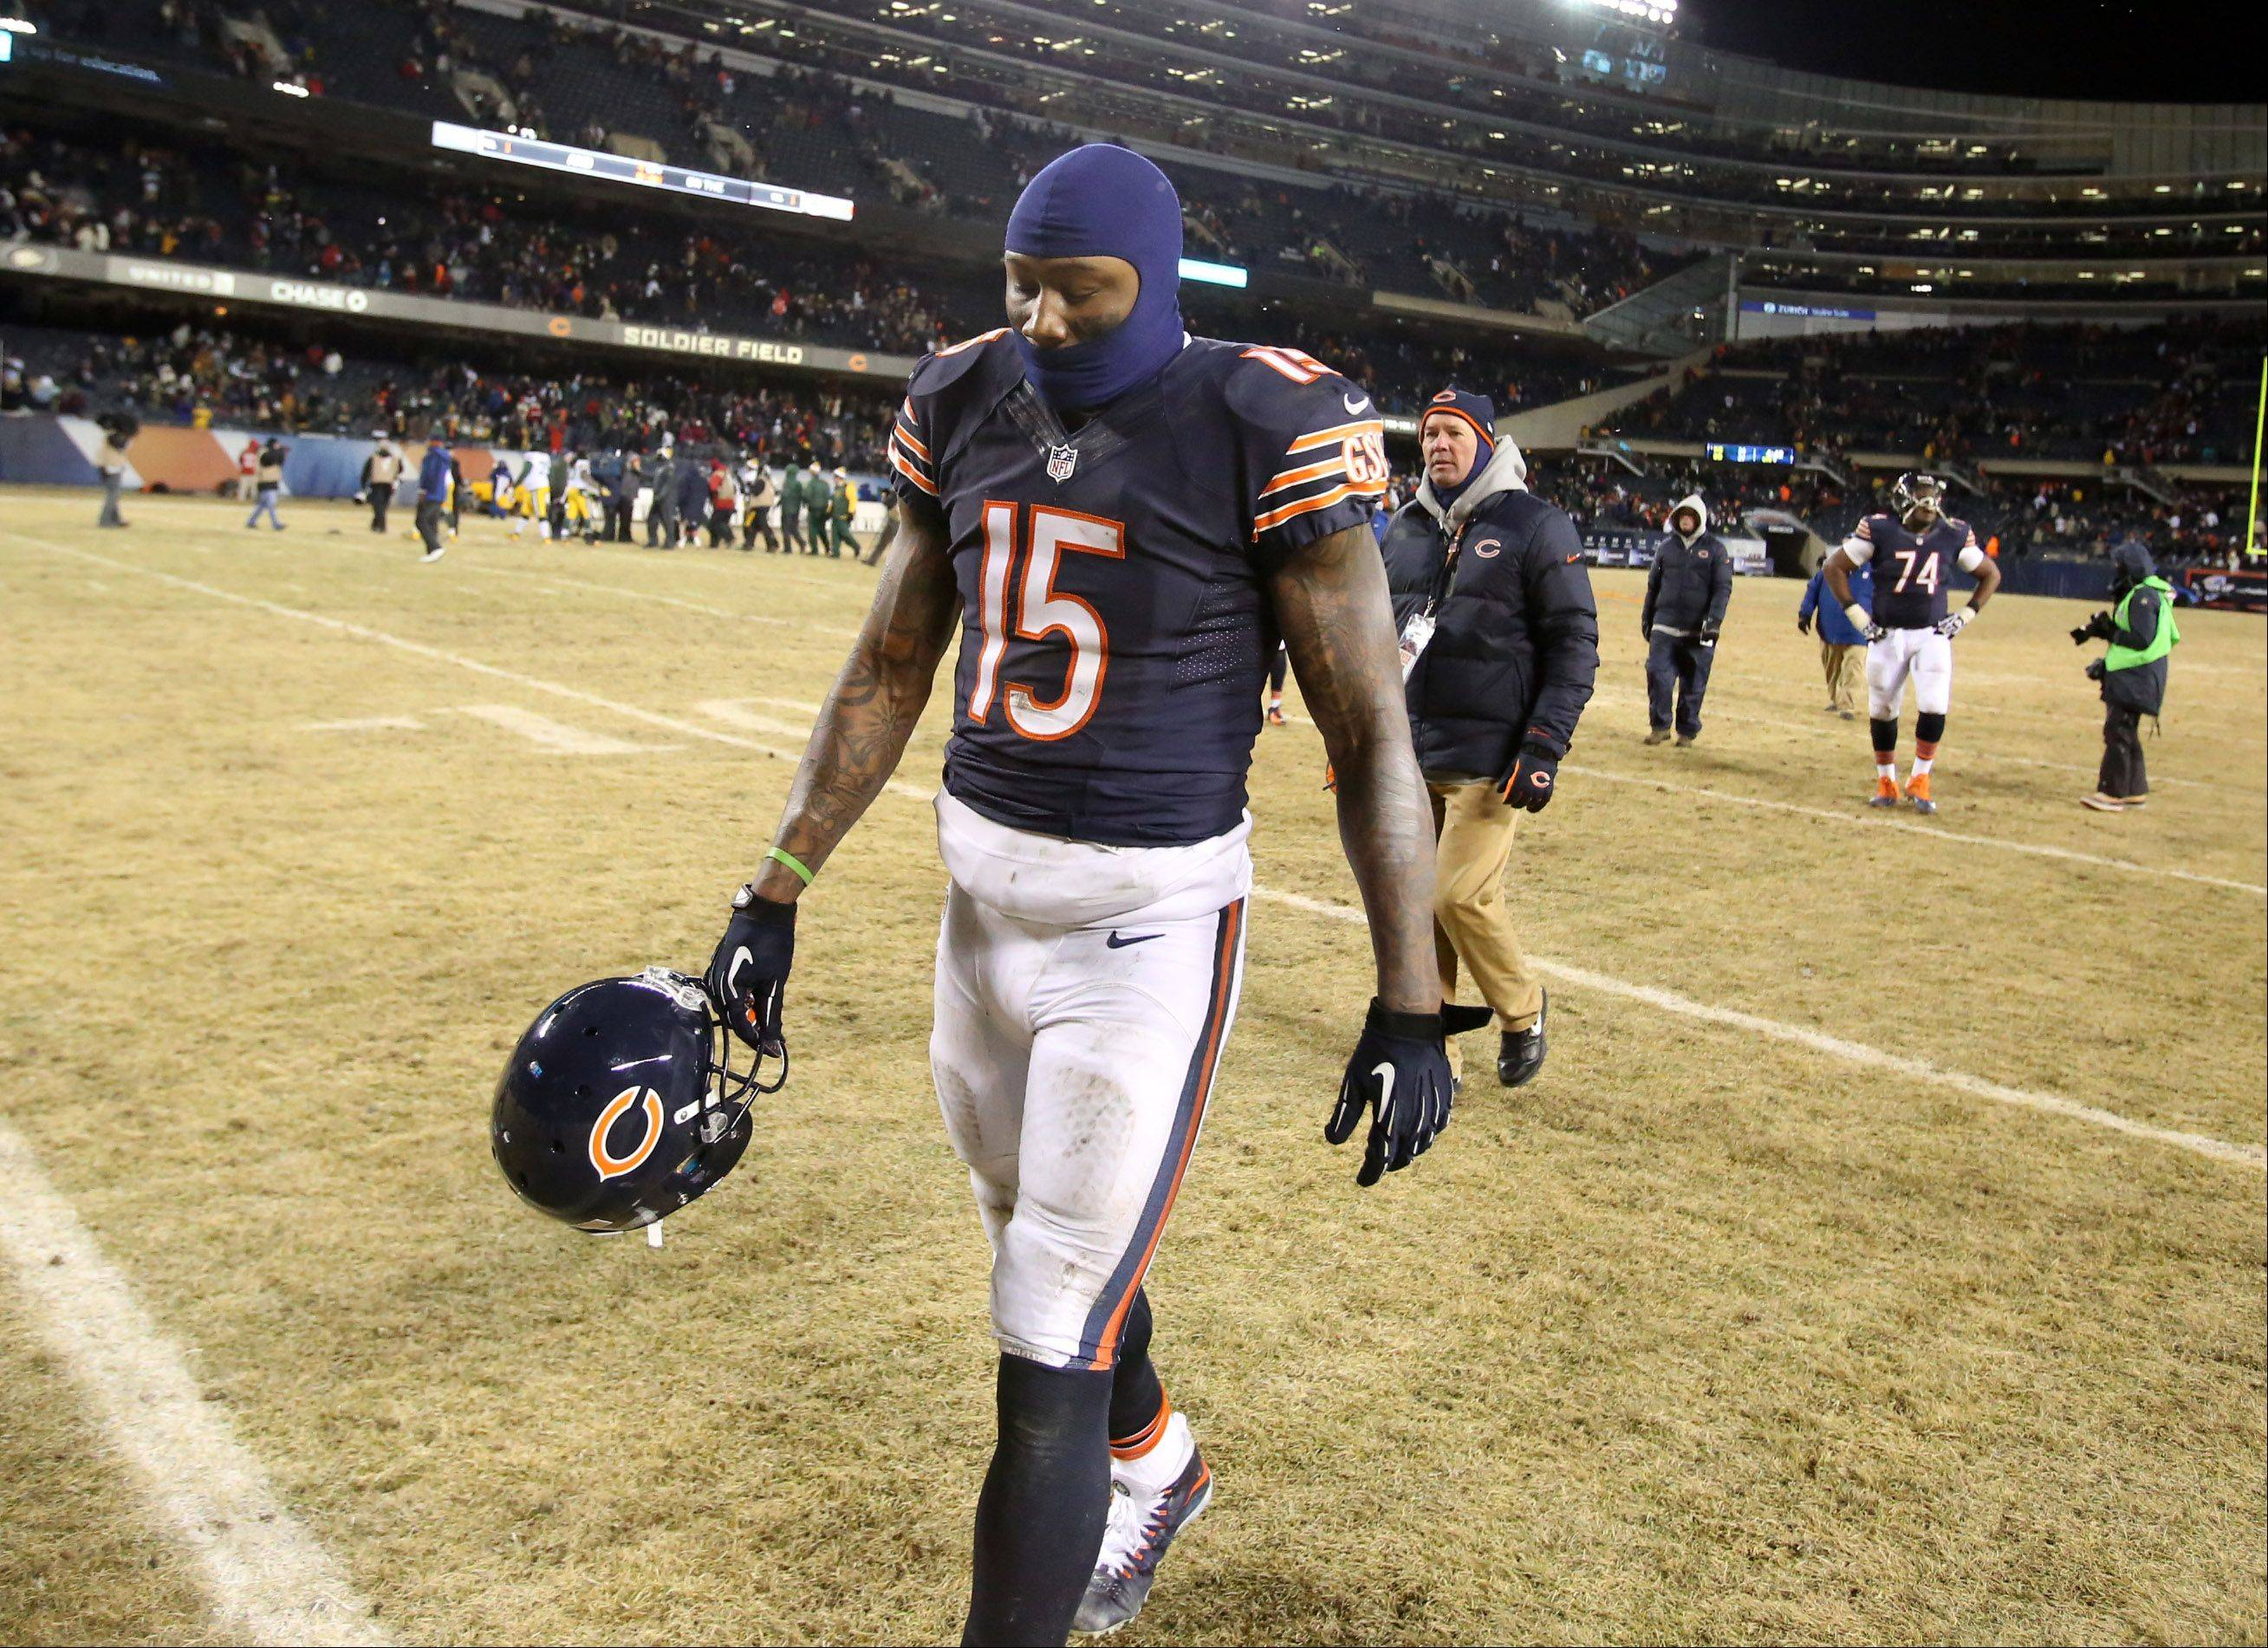 Bears wide receiver Brandon Marshall walks off the field after losing to the Green Bay Packers 33-28 on Sunday at Soldier Field in Chicago.